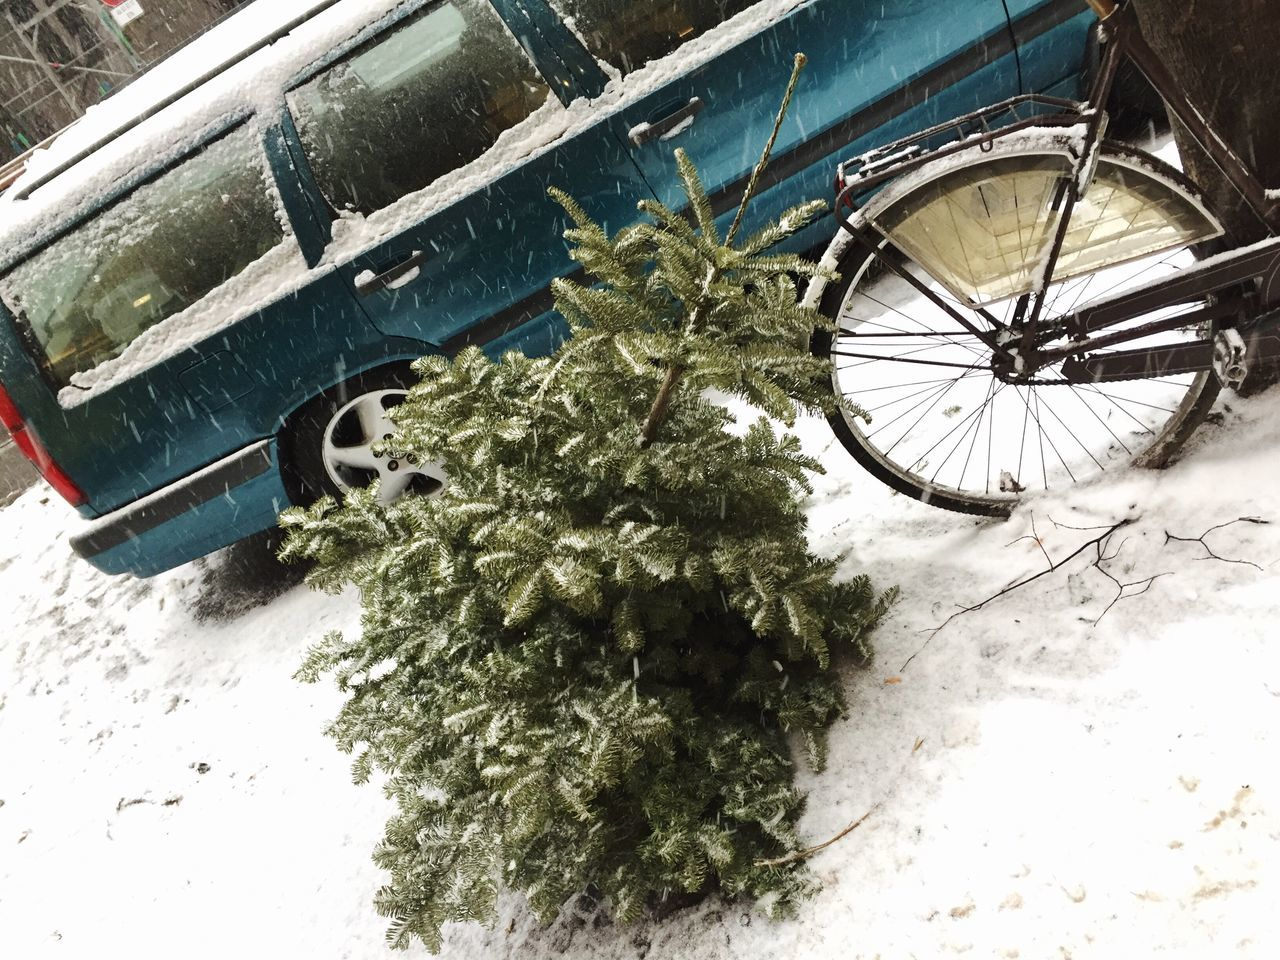 Winter Mode Of Transport Transportation Snow Land Vehicle Cold Temperature Weather Stationary No People Outdoors Nature Close-up Day Xmas Xmas Tree